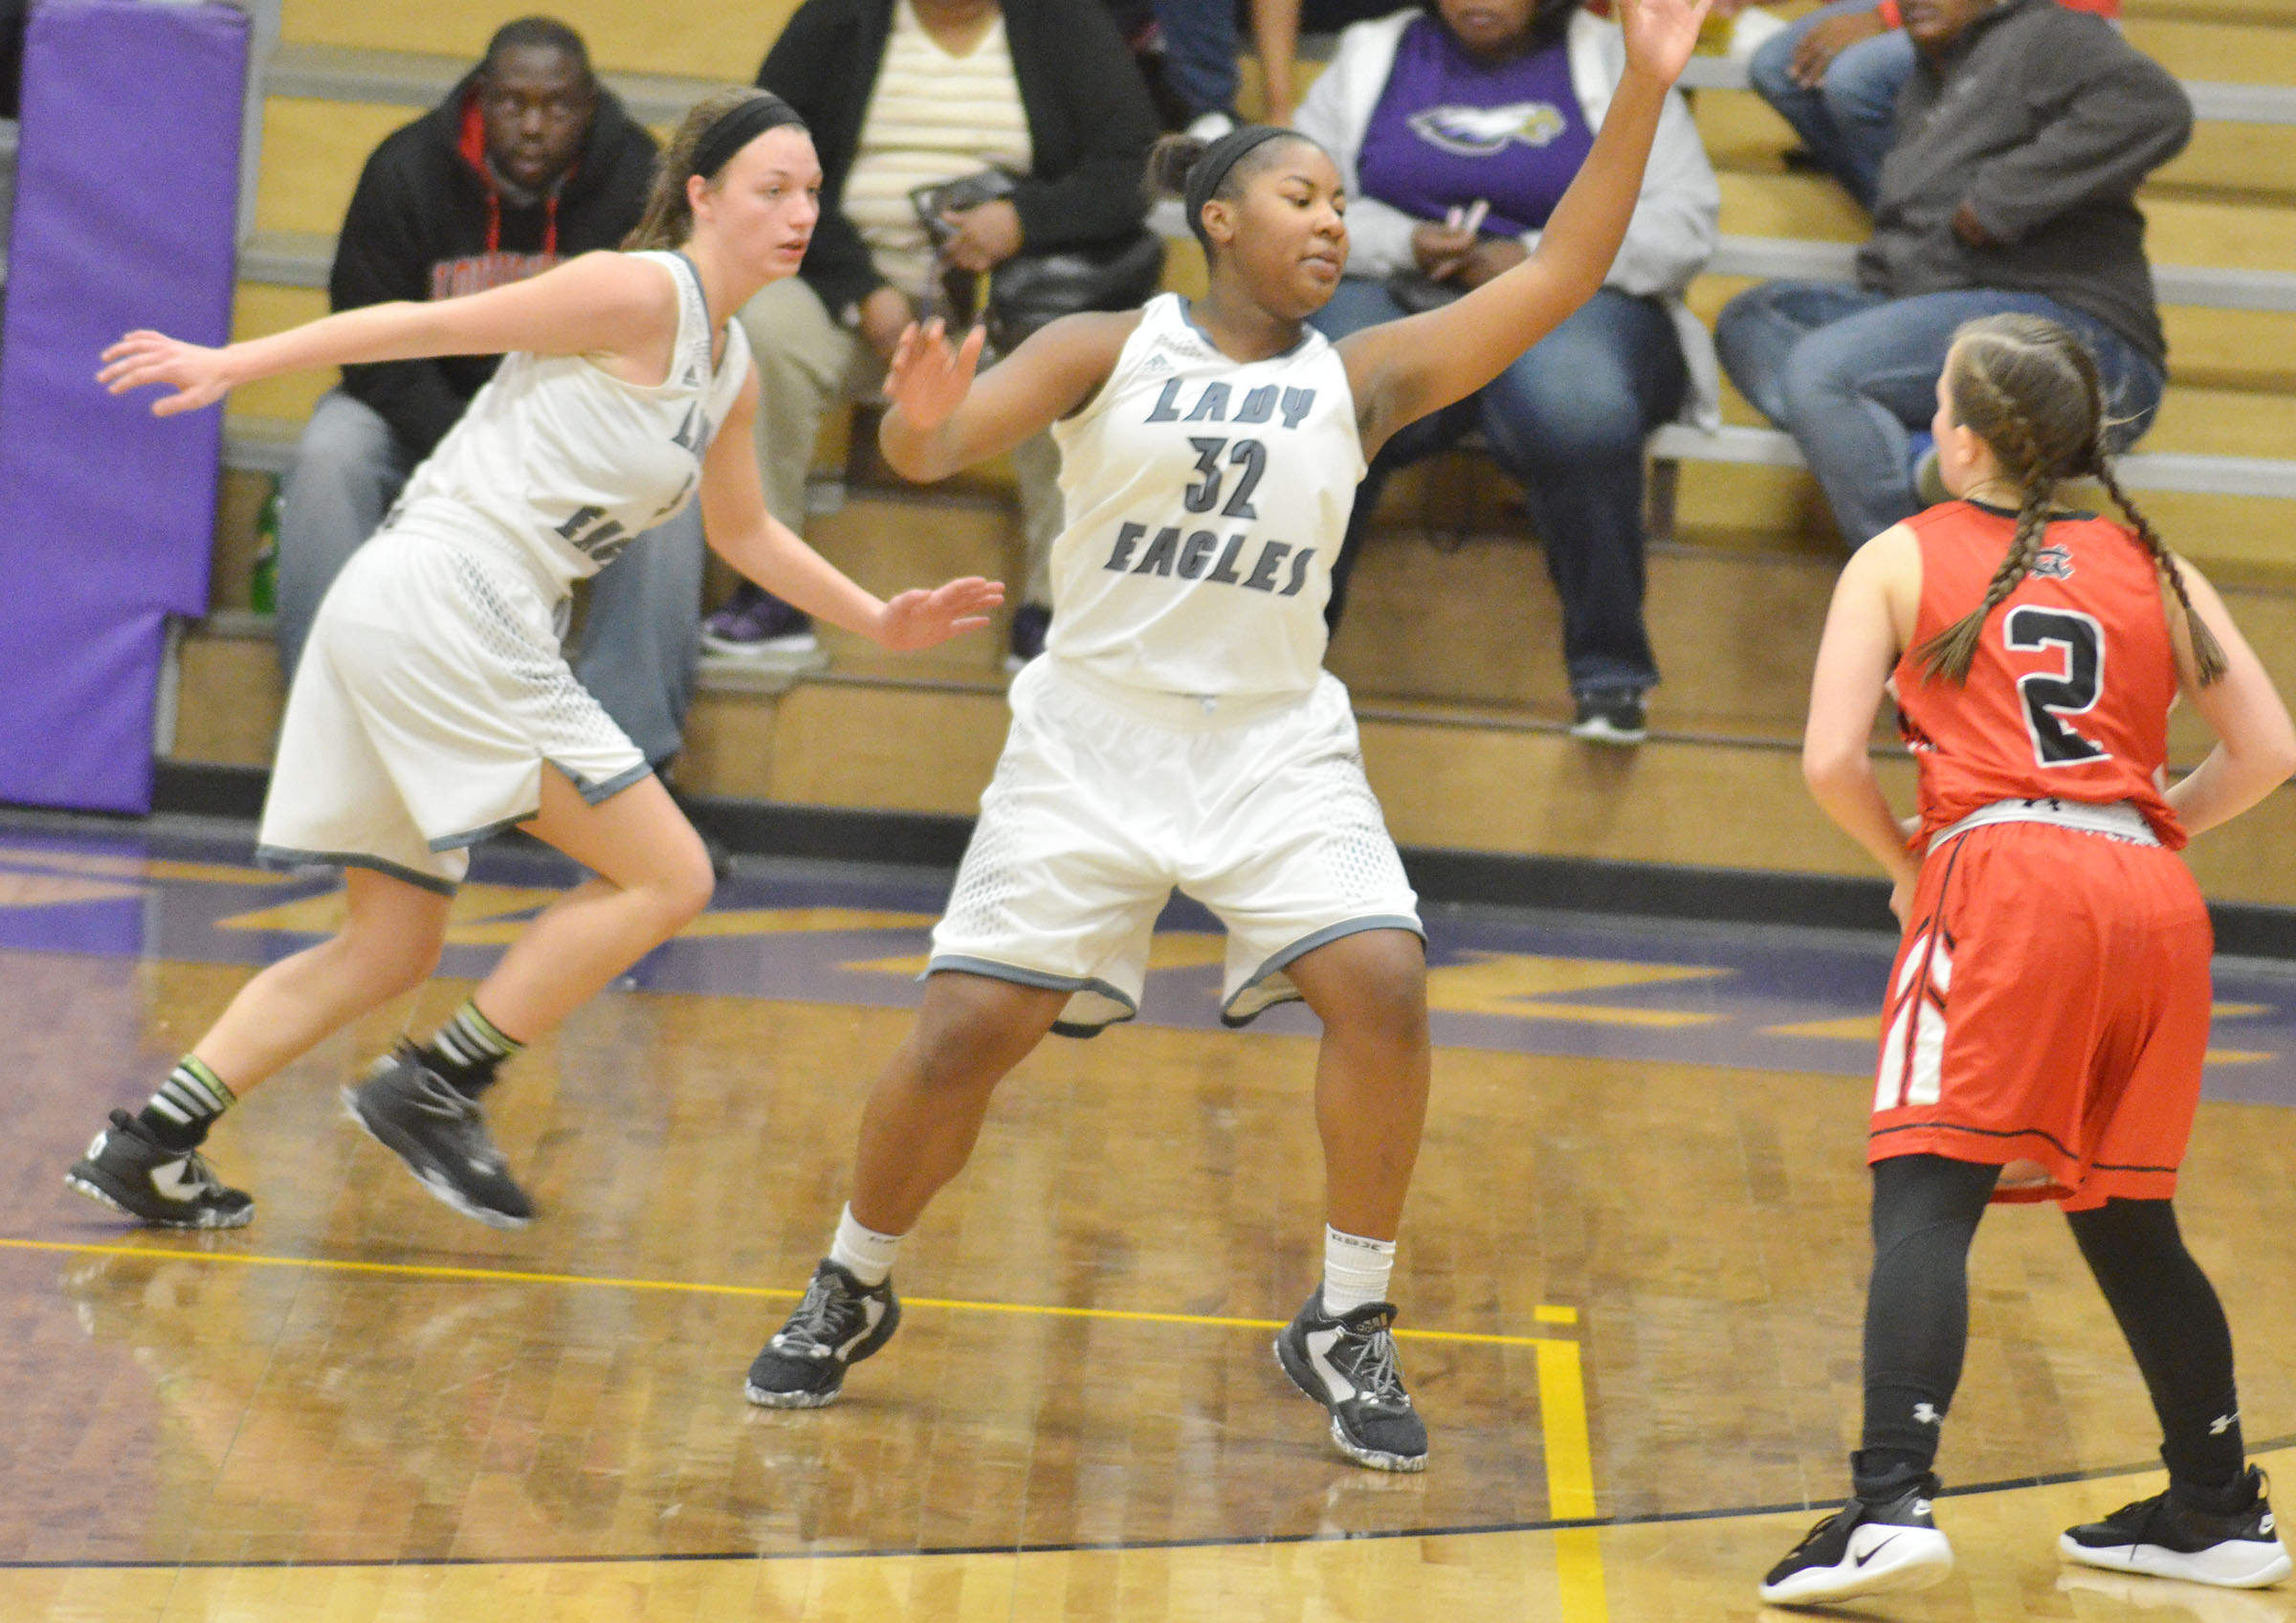 CHS senior Caylie Blair, at left, and junior Nena Barnett play defense.